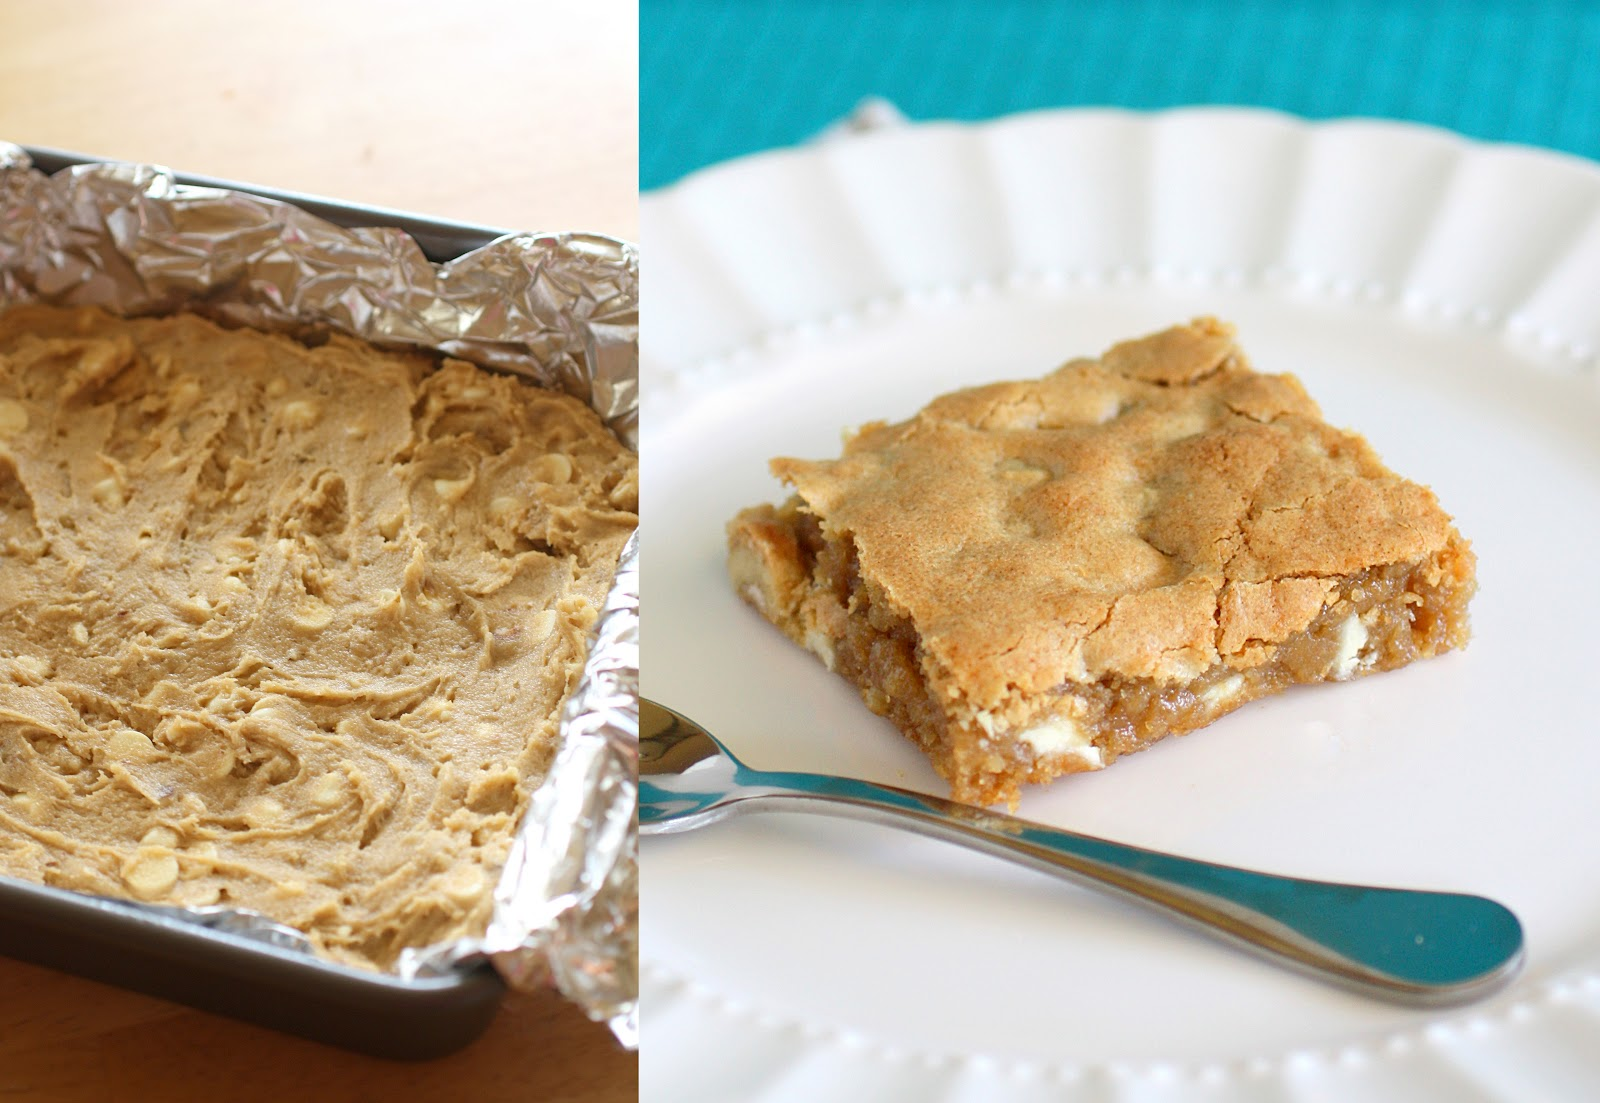 Maple Walnut Blondie (Applebee's Copycat Recipe)